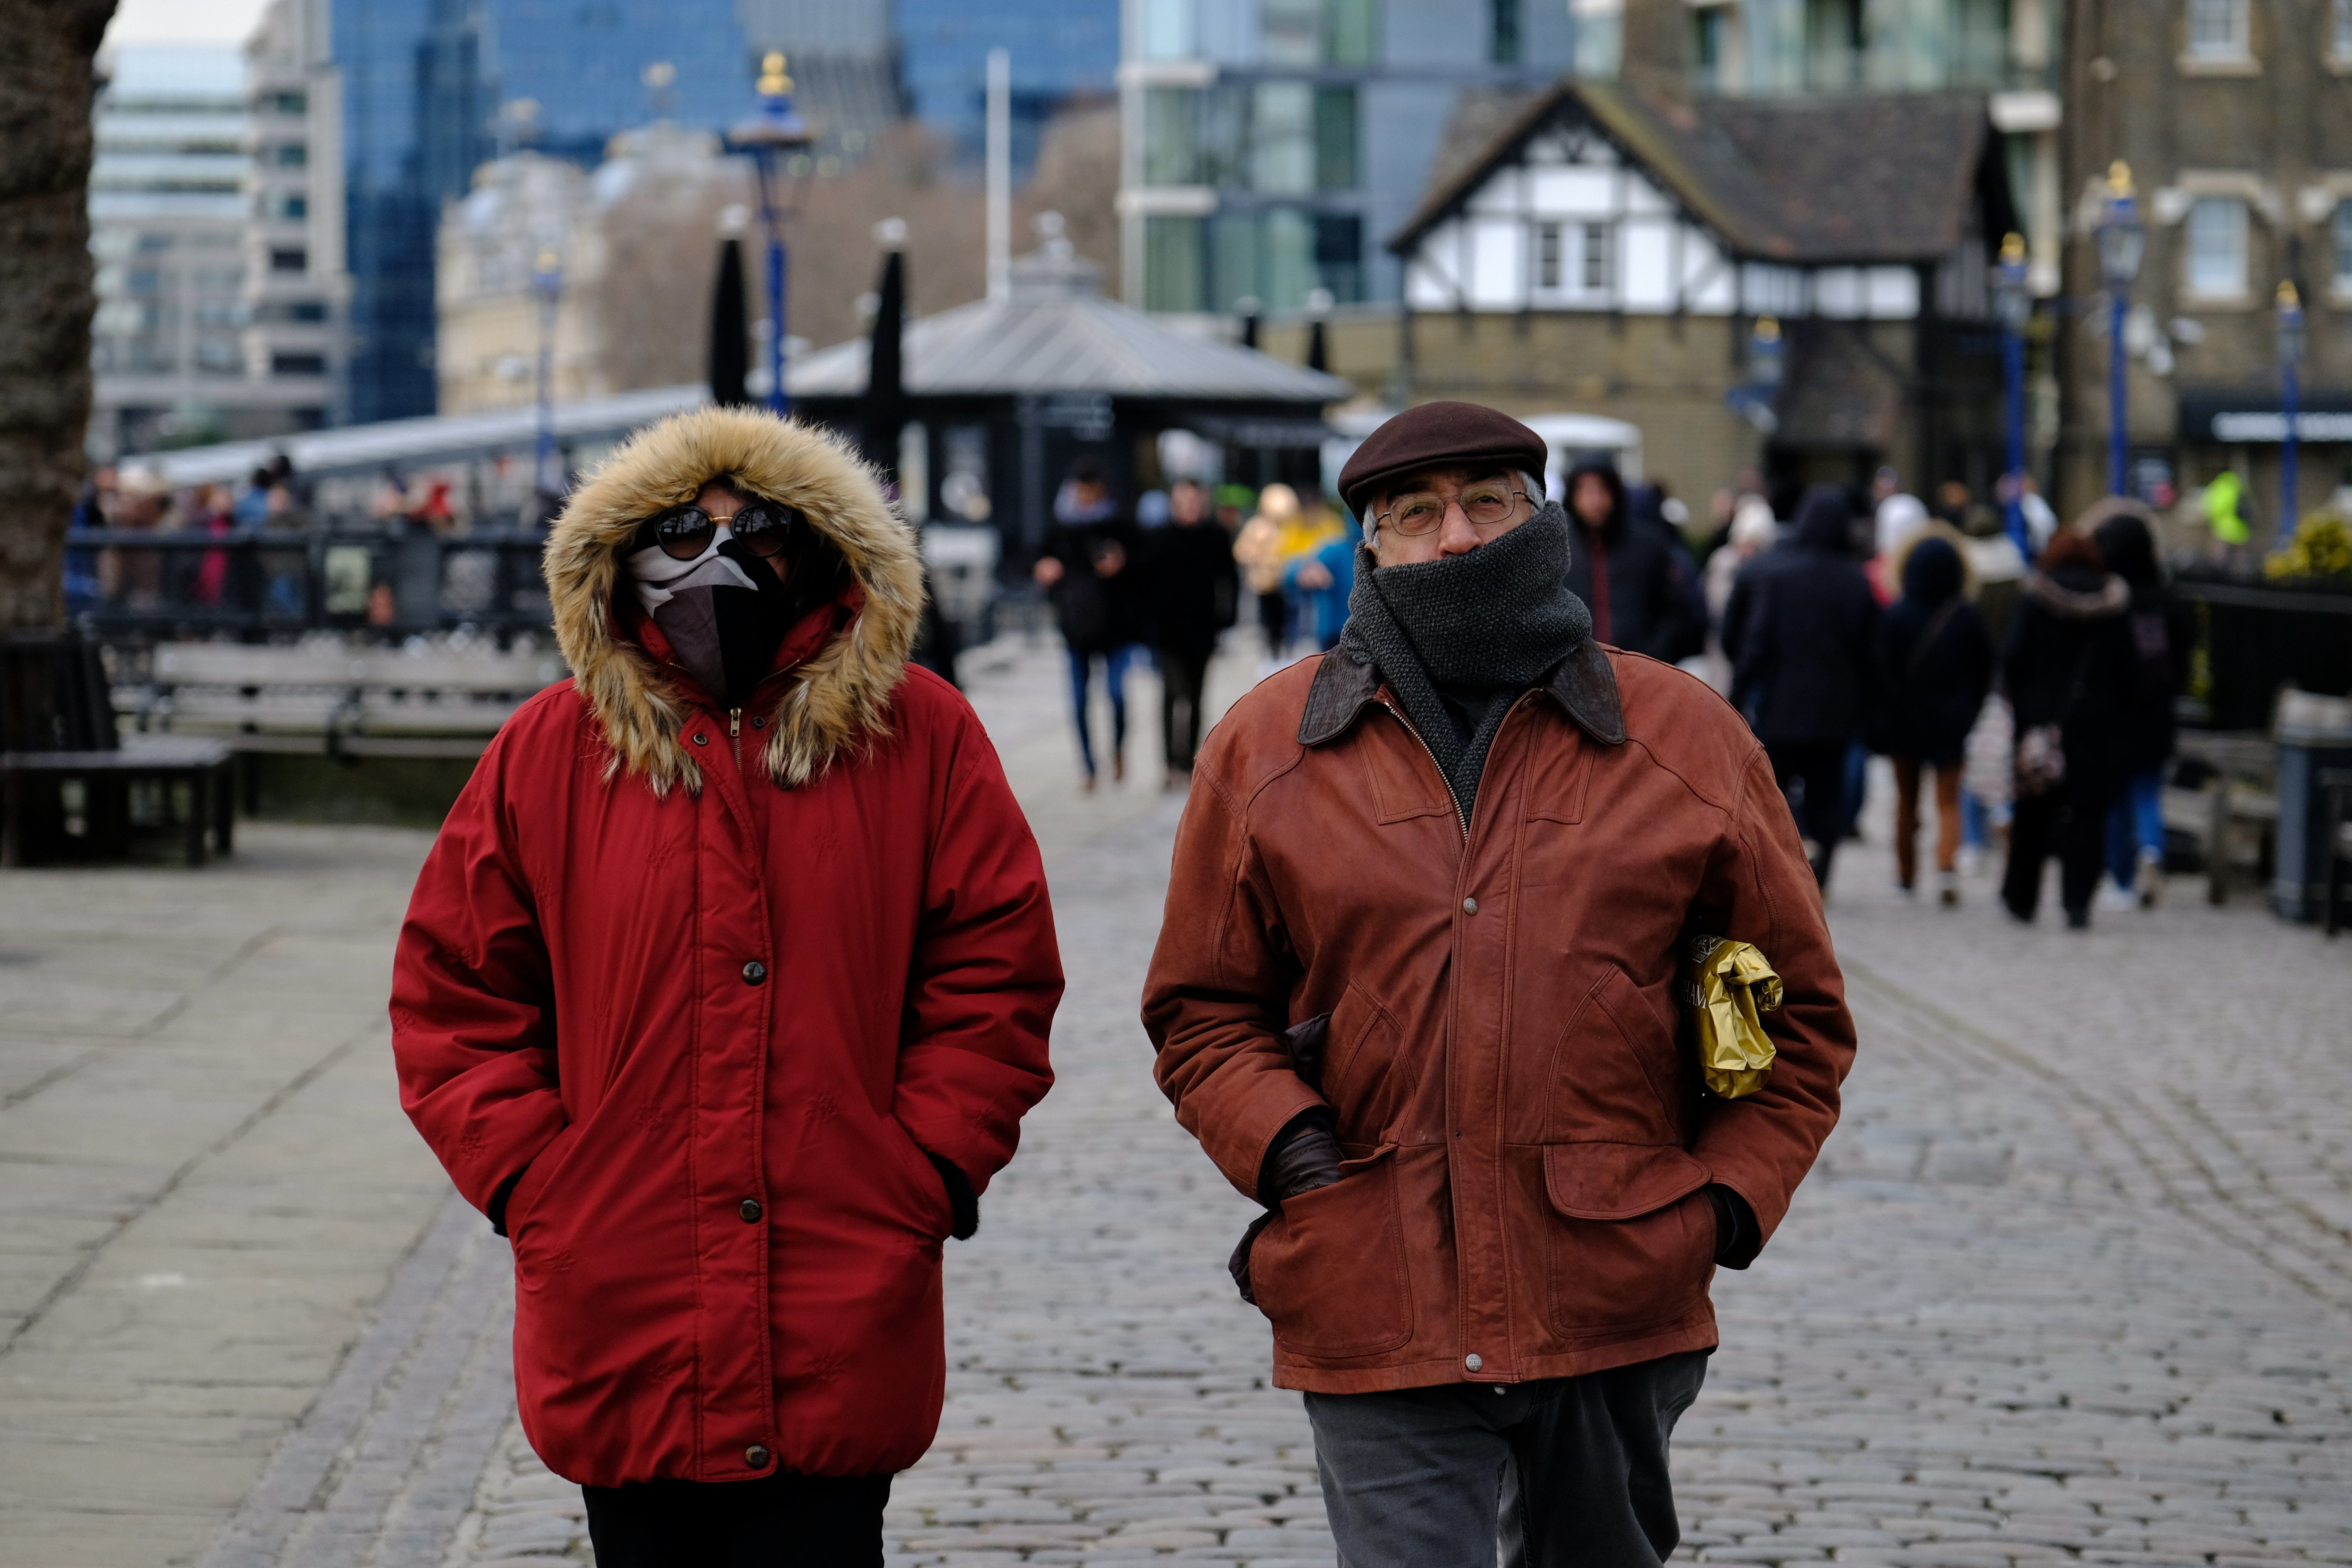 Brace For A Cold Snap – 'Mild' Temperatures Are About To